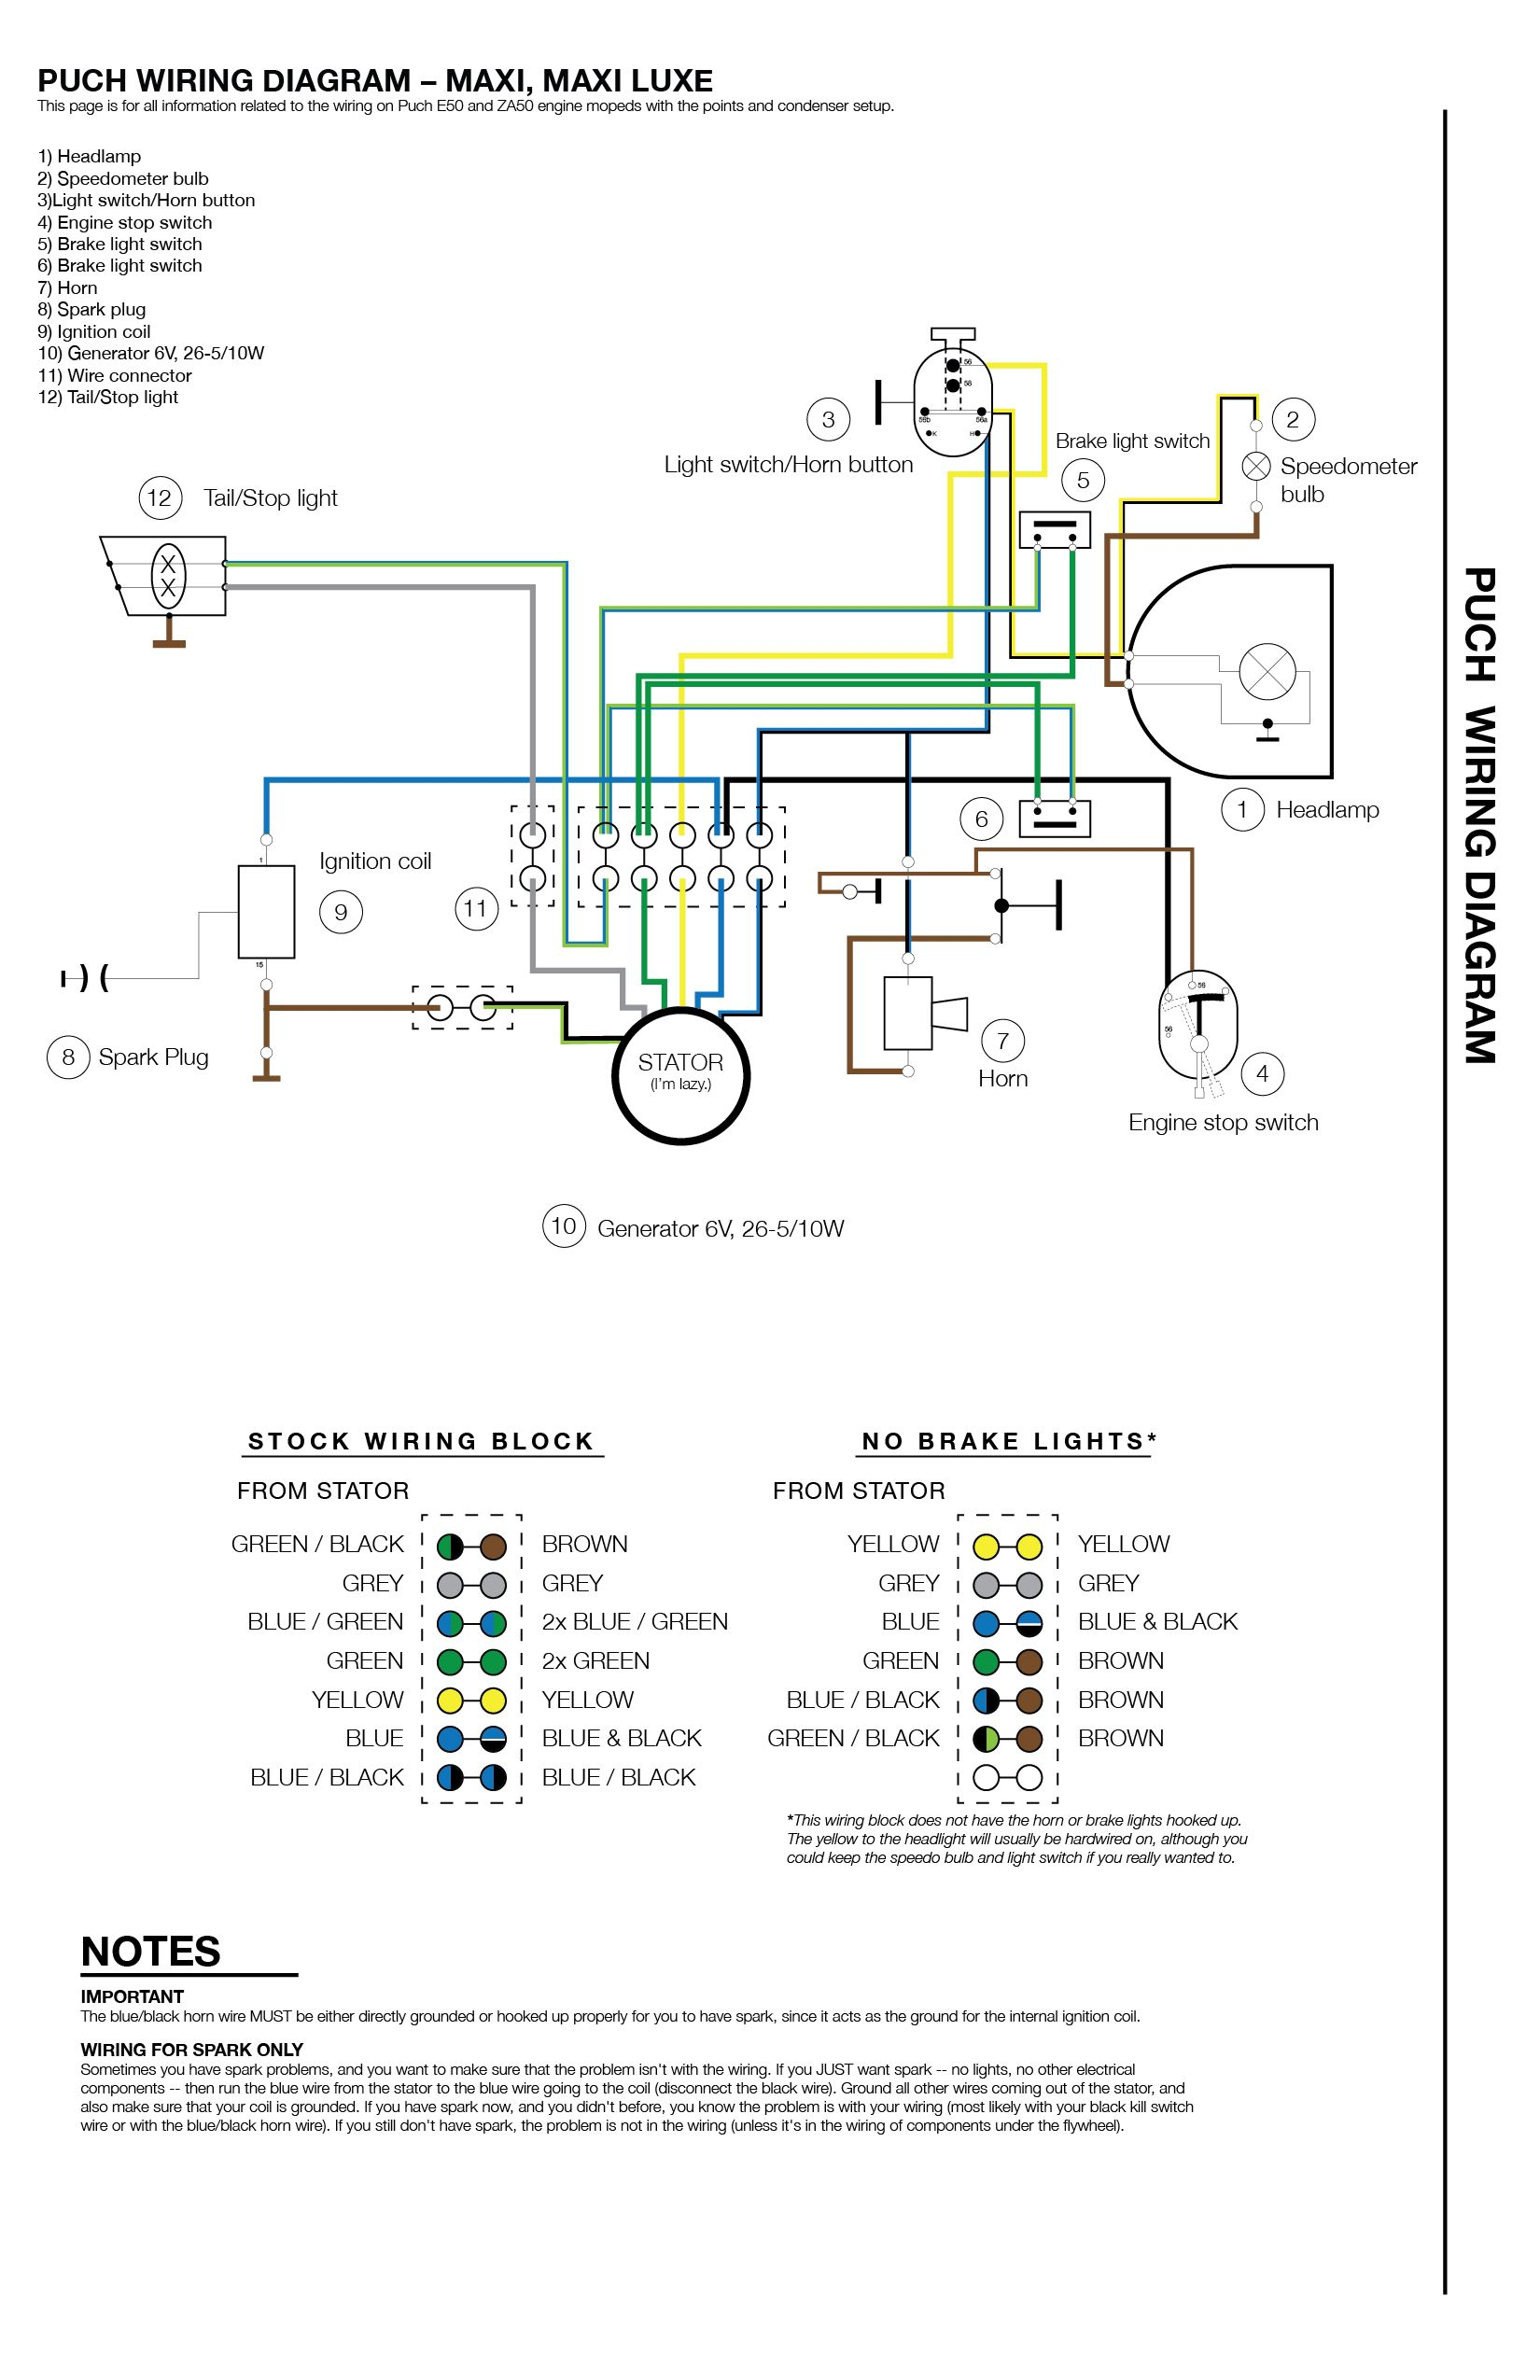 Pit Bike Wiring Diagram Kick Start : wiring, diagram, start, Wiring, MopedWiki, Motorcycle, Wiring,, Puch,, Electrical, Diagram